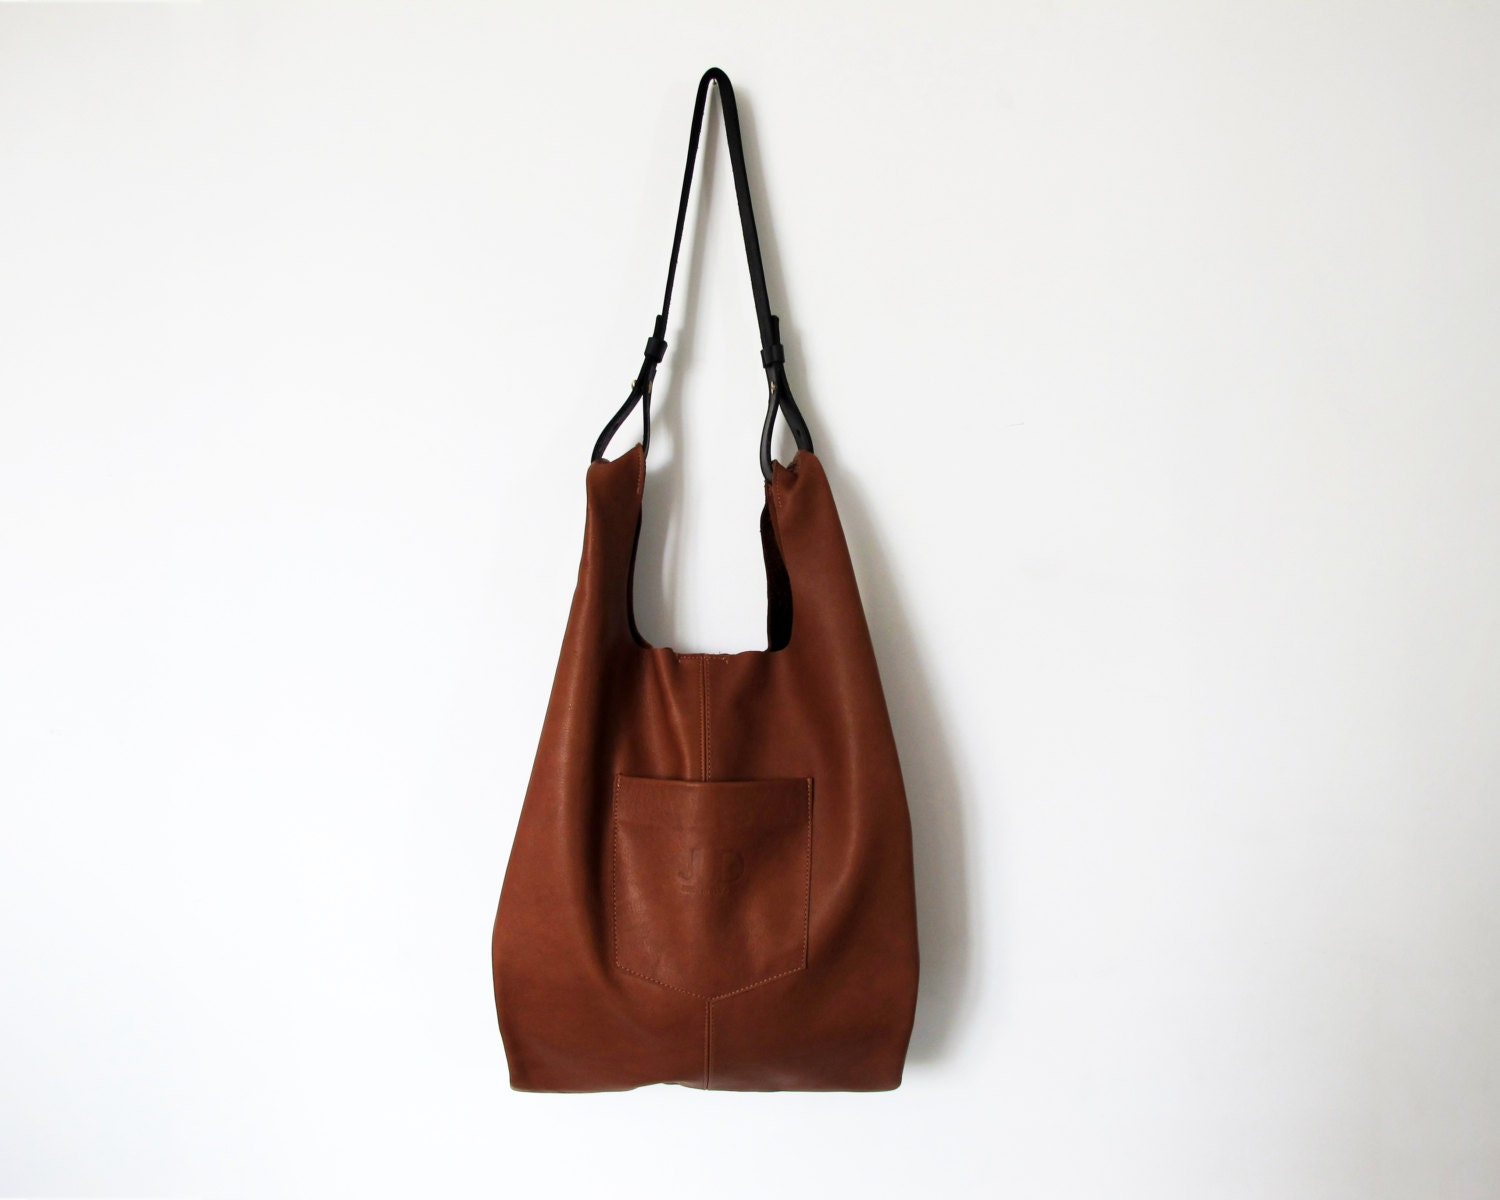 Leather Bag Brown Leather Tote Women Leather Bag Sale